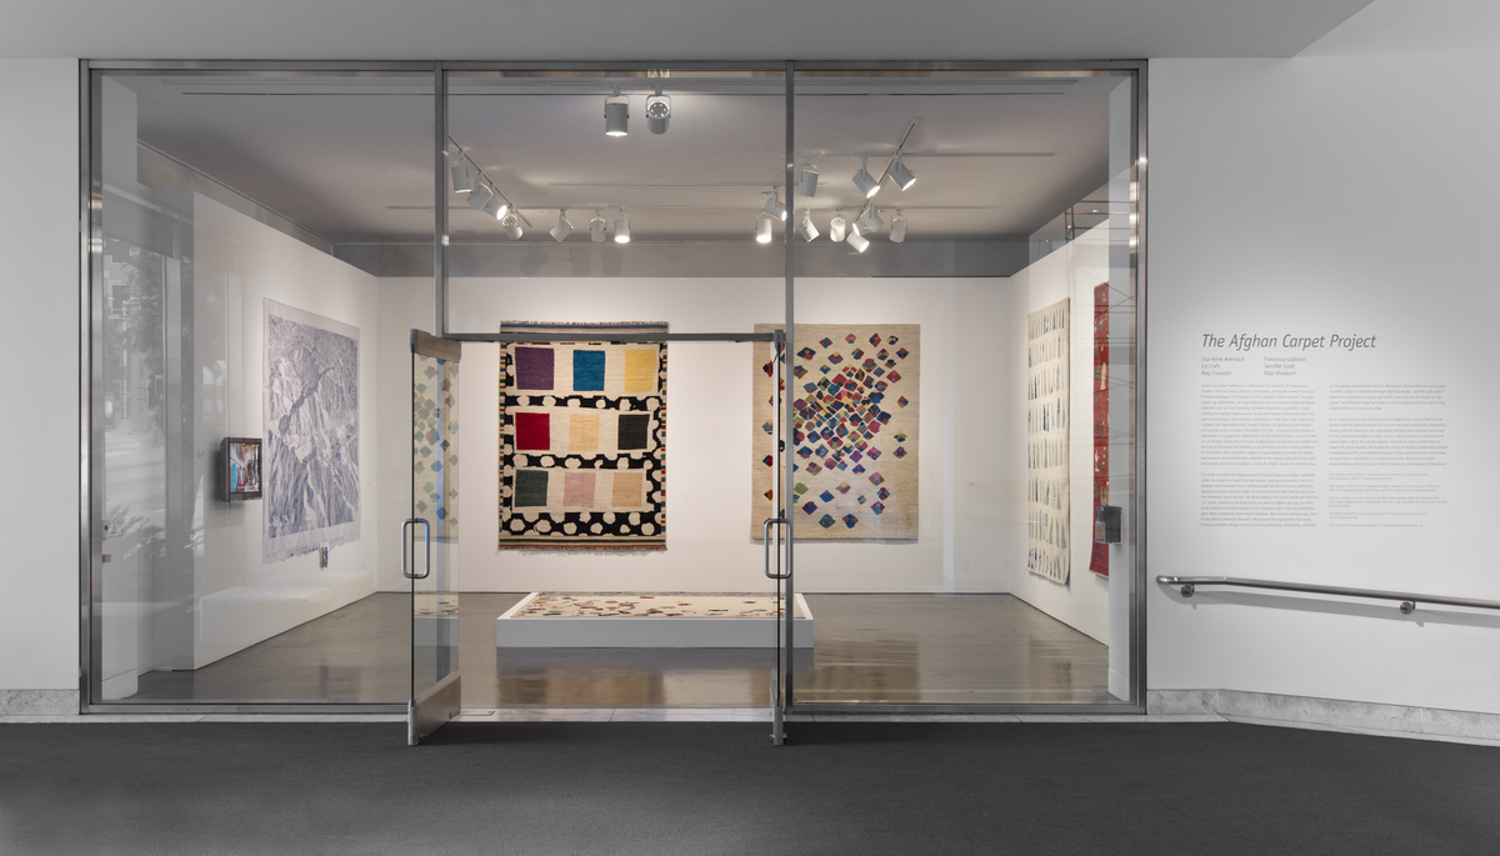 The Afghan Carpet Project, June 13-September 27, 2015. Installation at the Hammer Museum, Los Angeles. Photo: Brian Forrest.